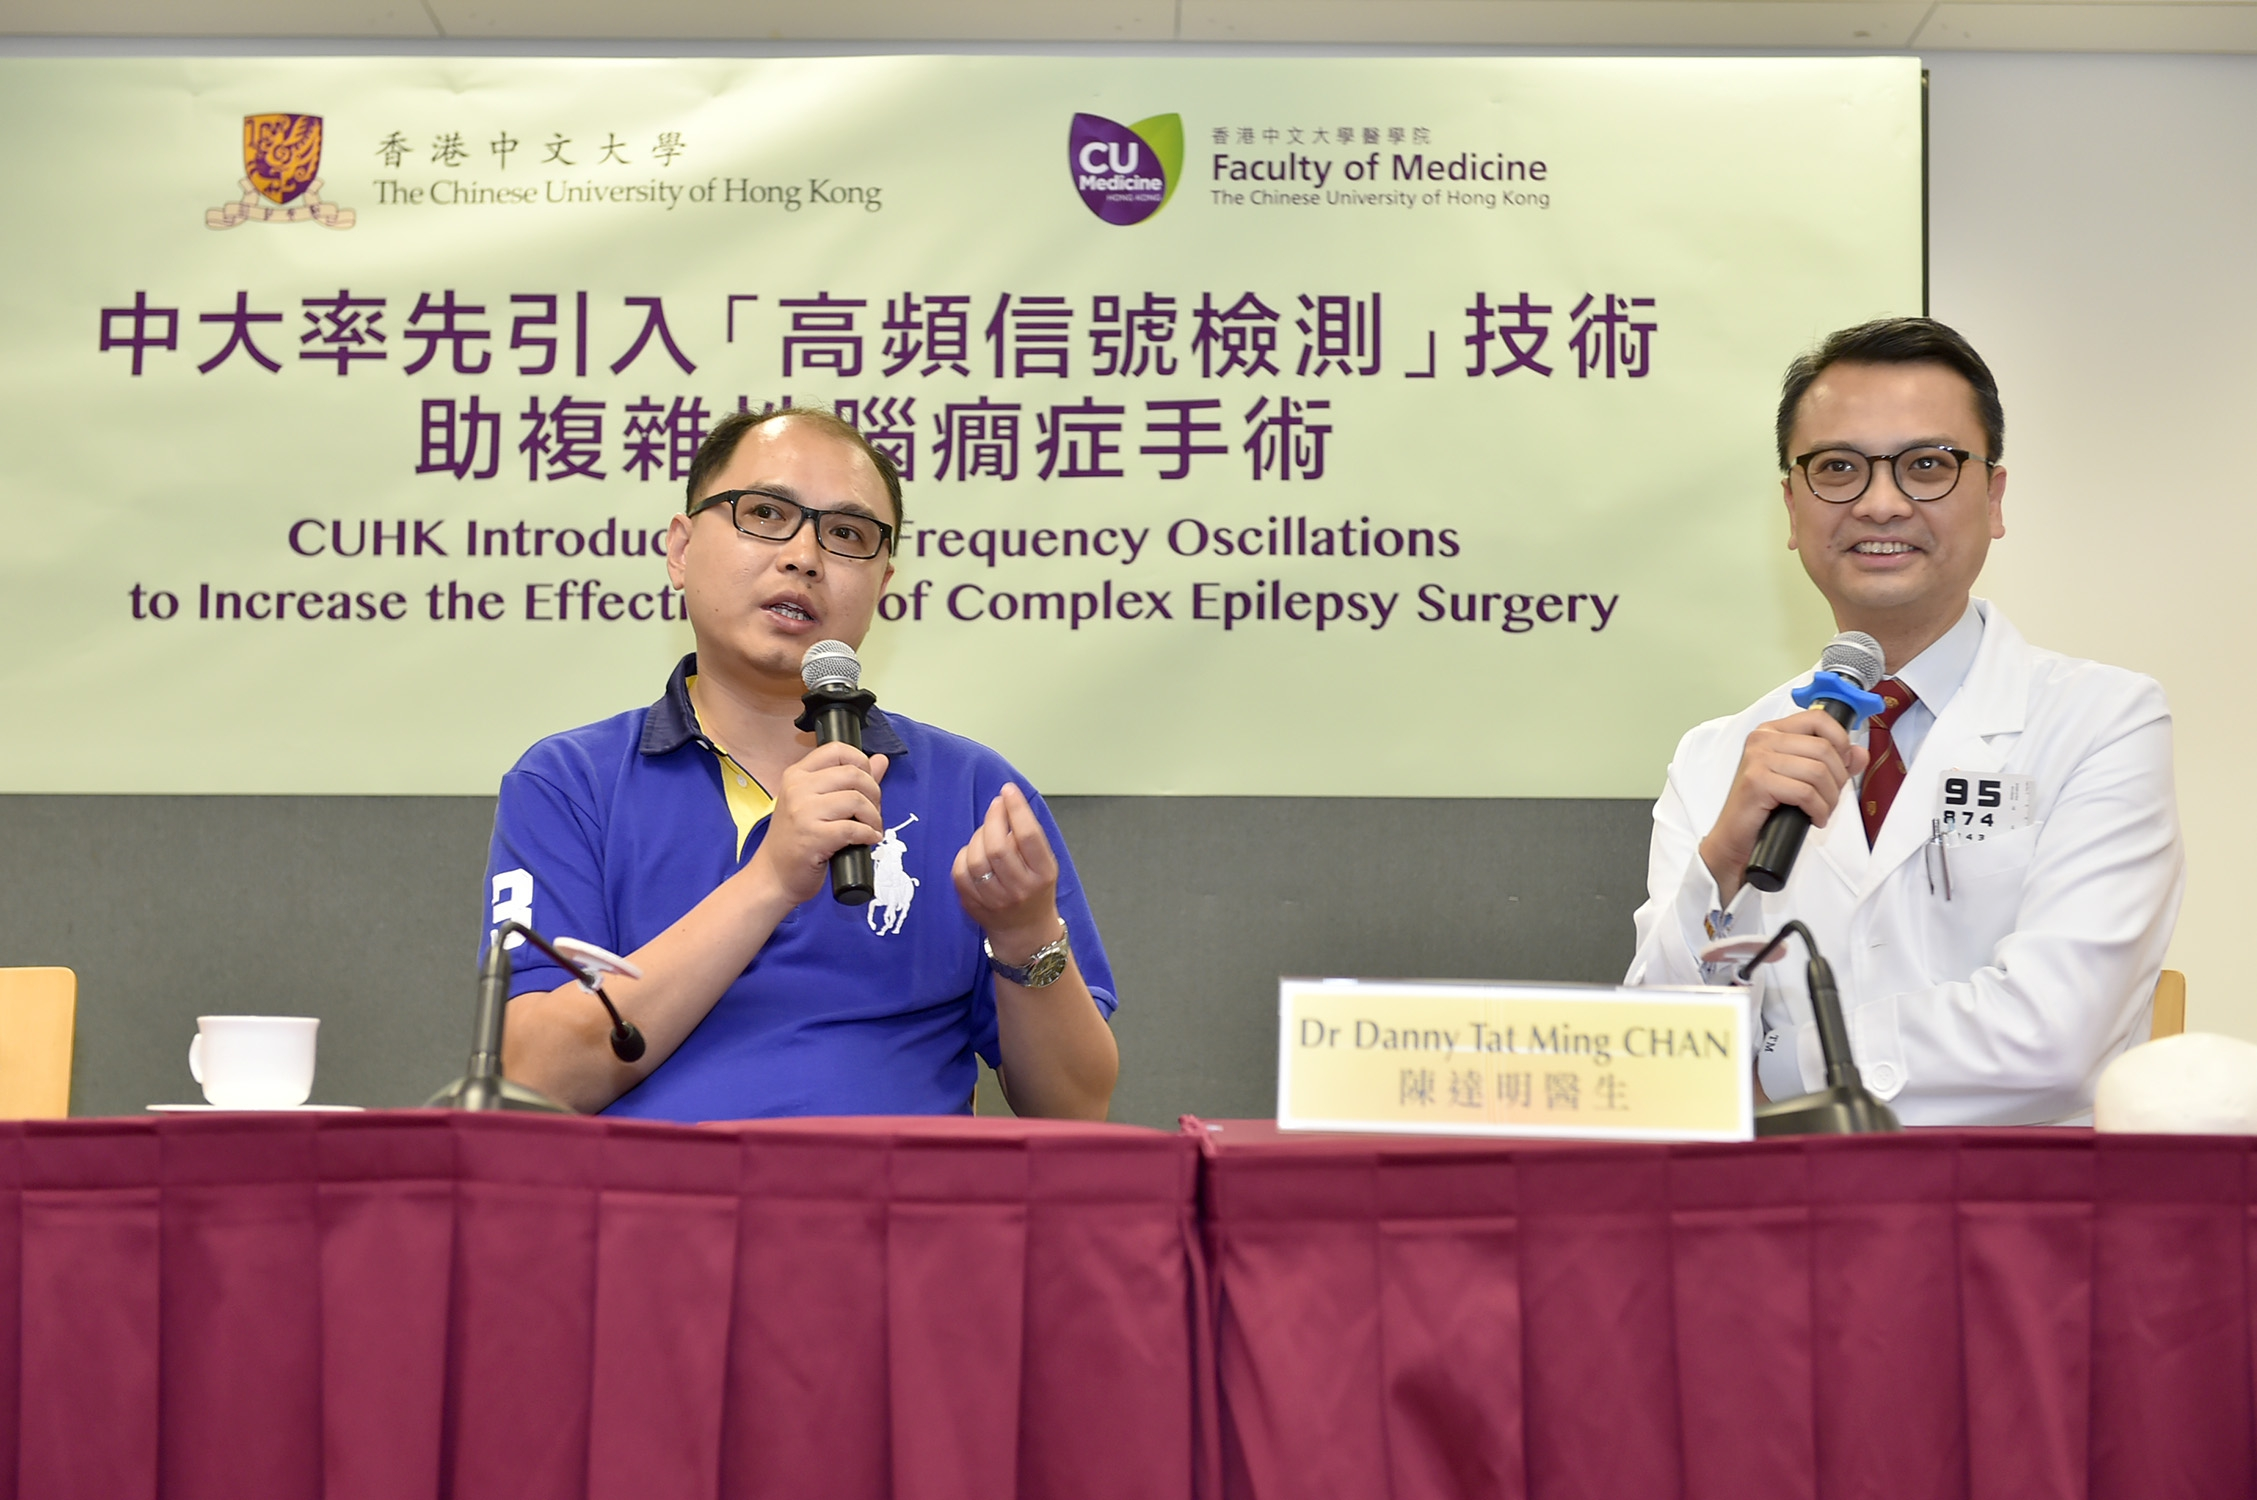 Mr. Au Yeung (left), who had suffered from complex epilepsy for 28 years, received intracranial electroencephalography (EEG) and high frequency oscillations (HFOs) monitoring in 2014. With the focal origin successfully located and resected, his frequency of incidence has dropped from around 20 to 4 seizures per year with much lighter symptoms.